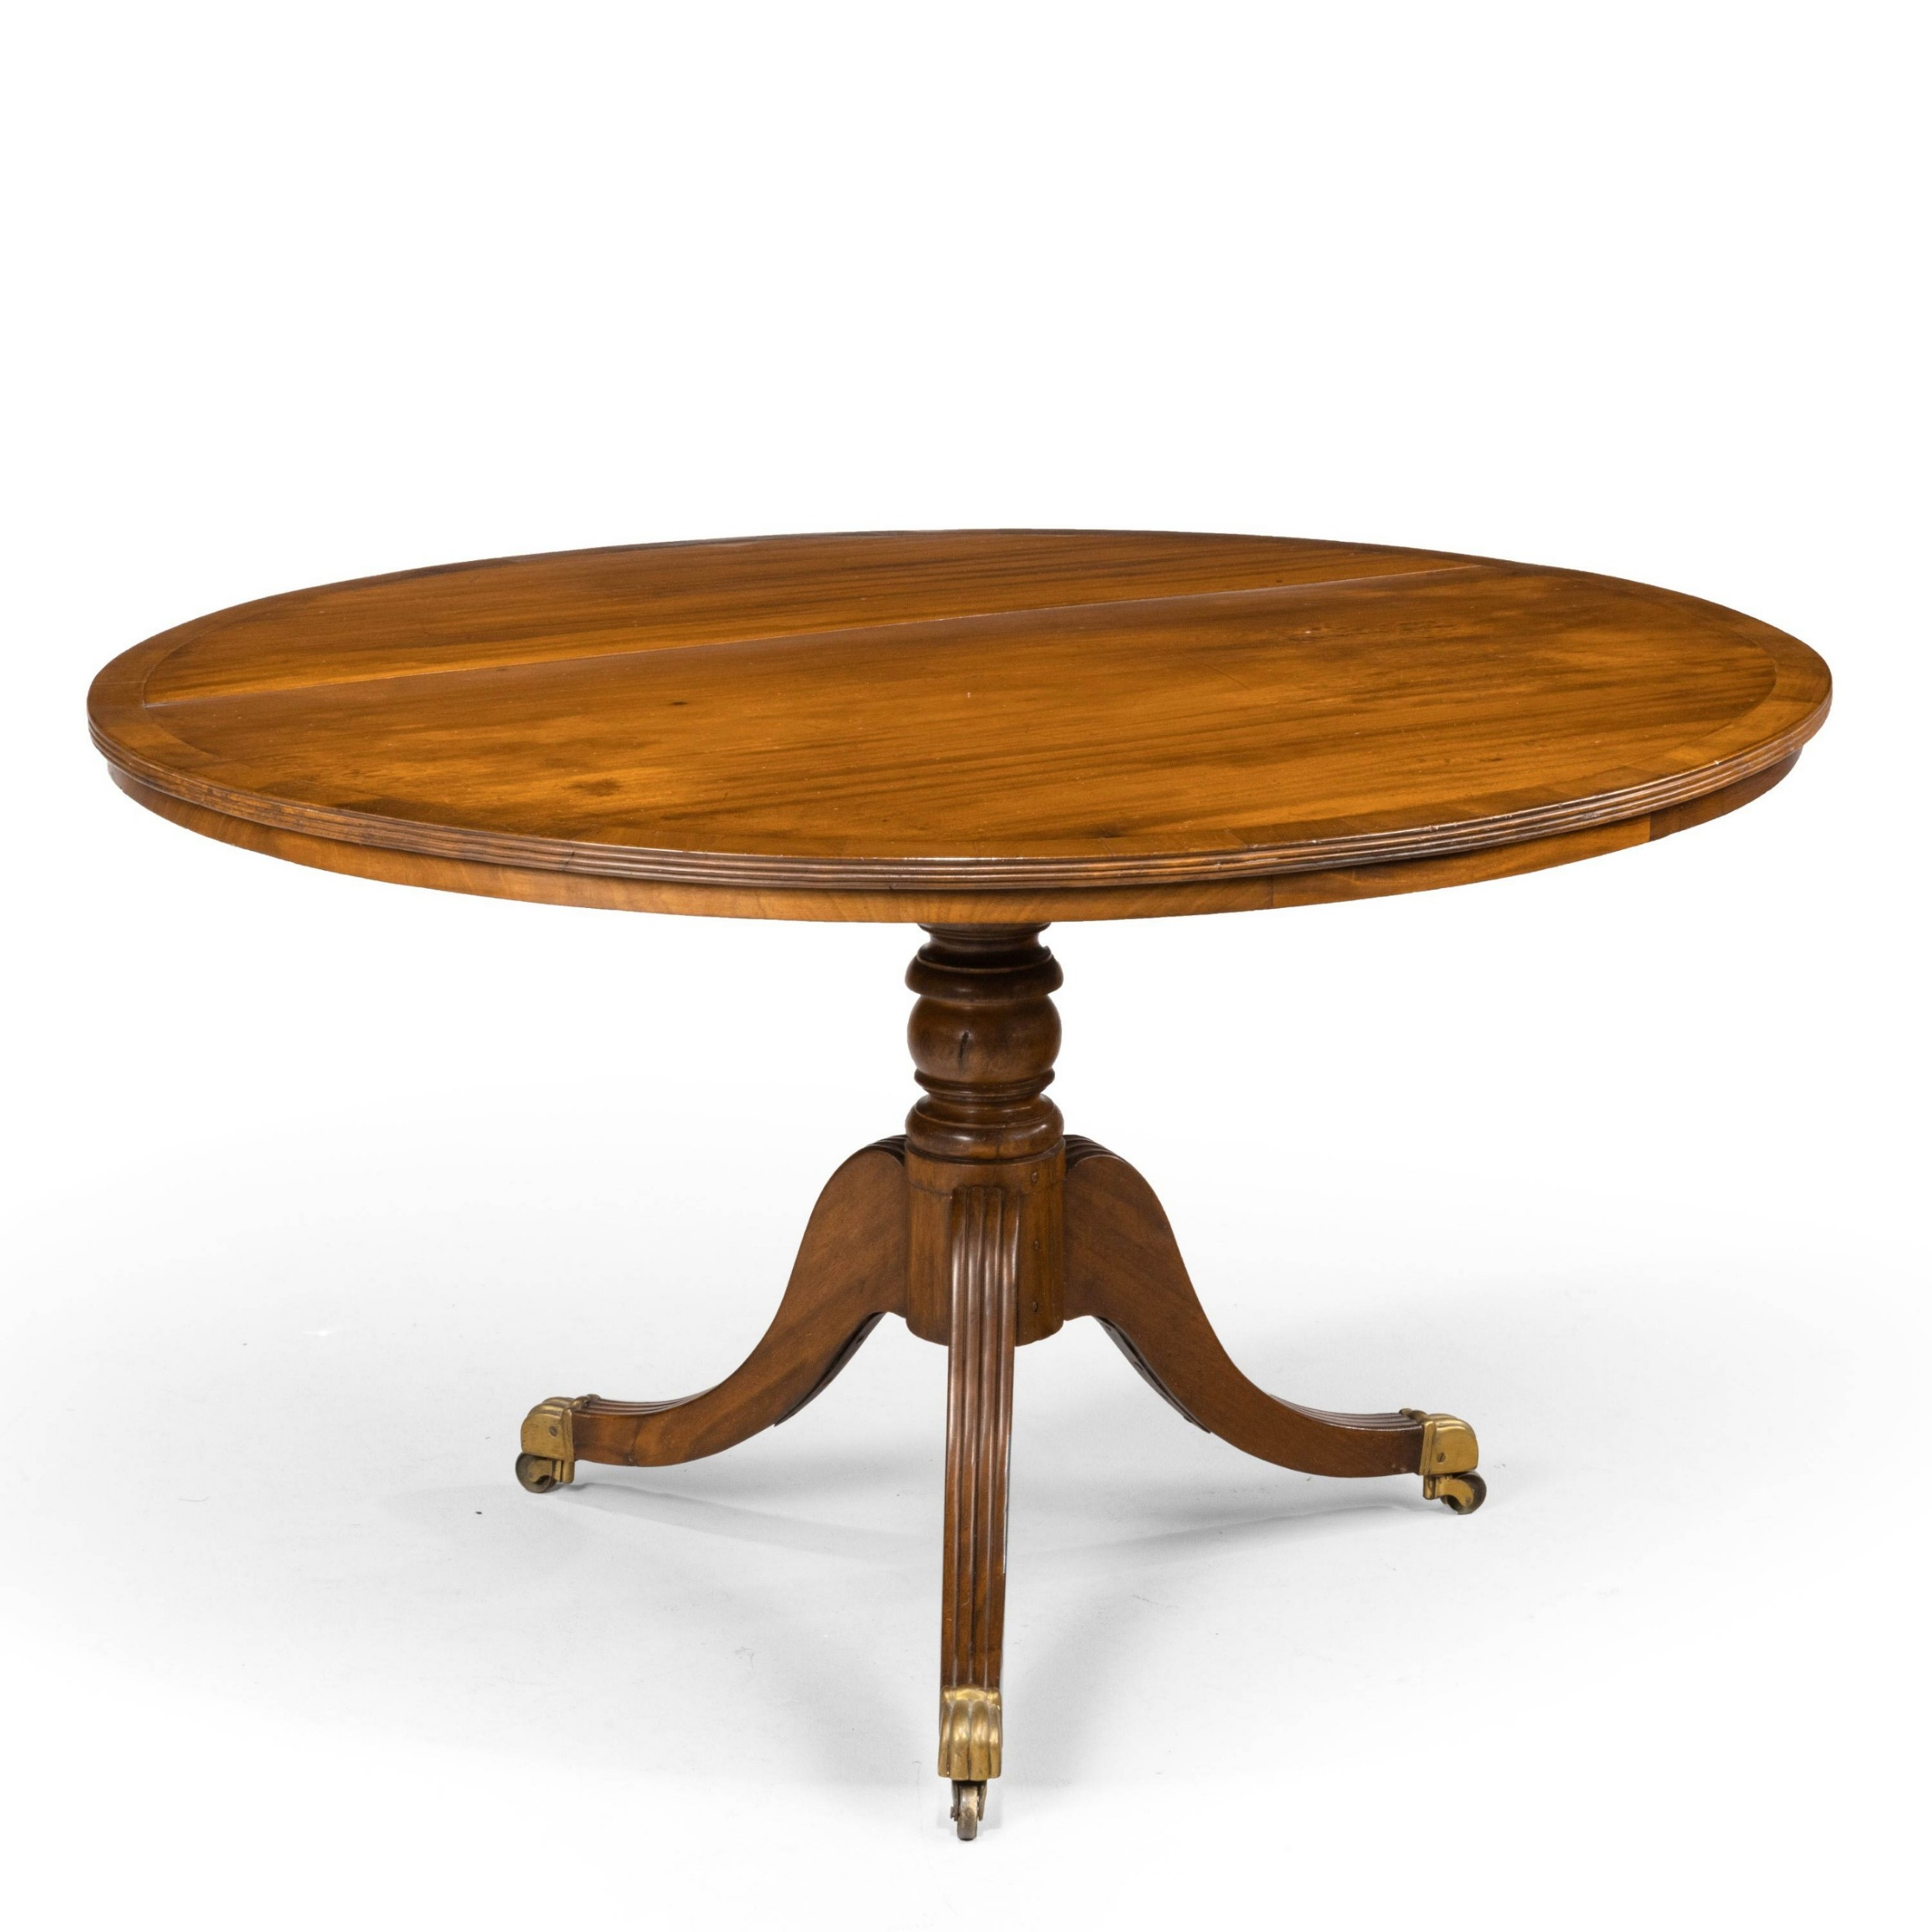 a regency period circular mahogany table